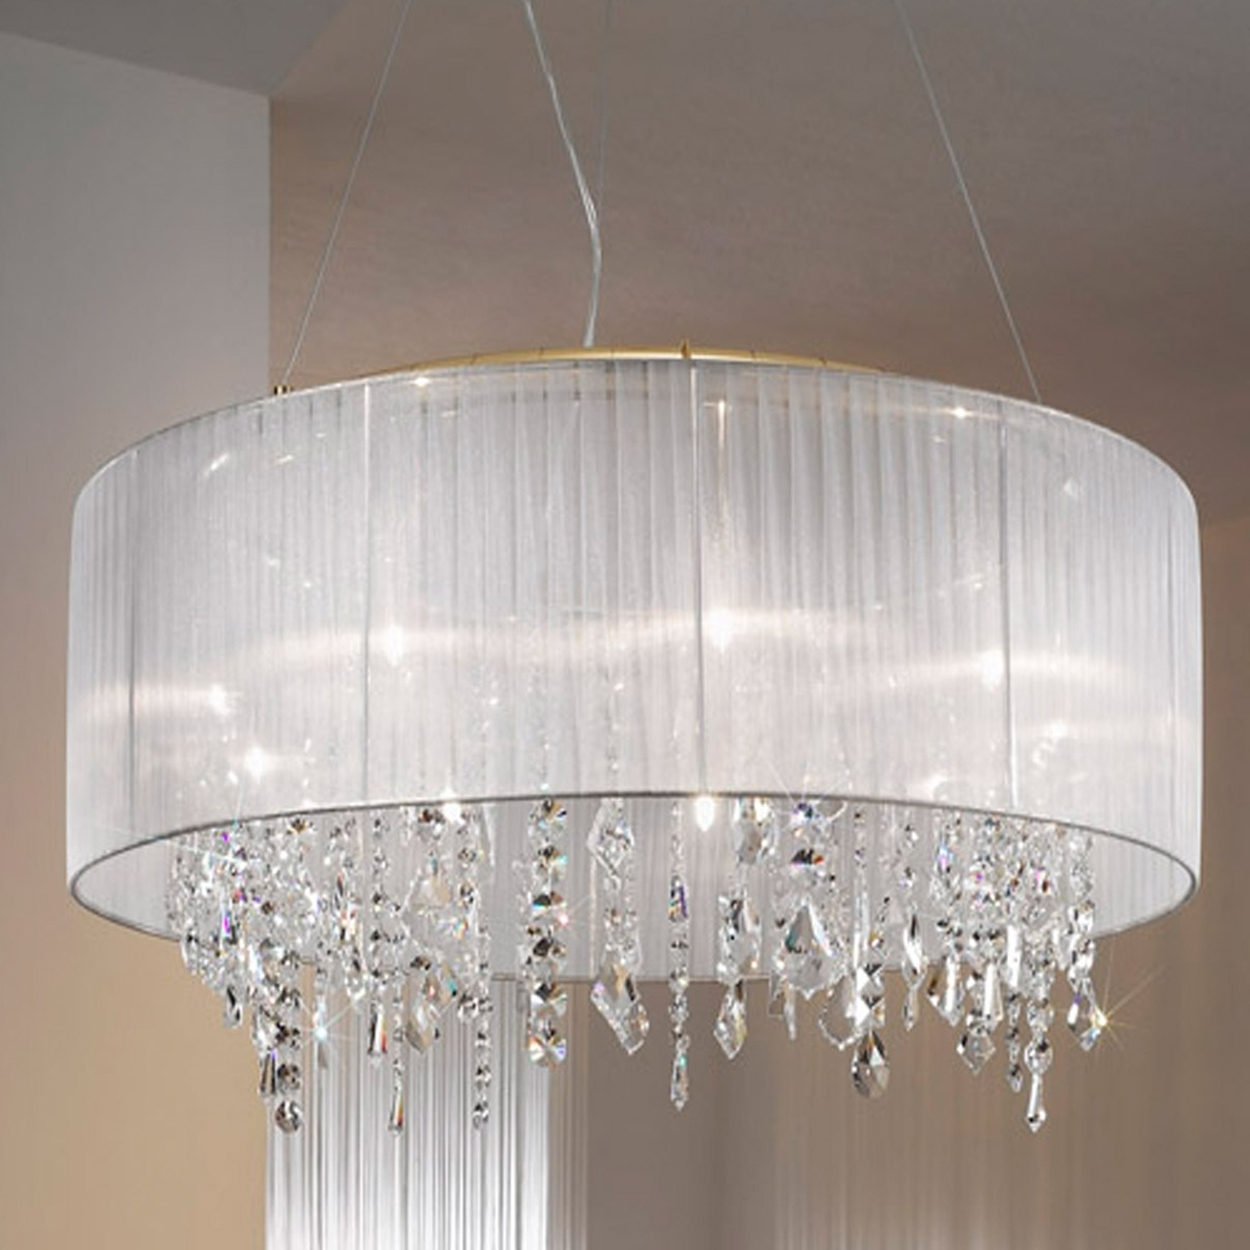 Favorite Chandelier Light Shades In Chandelier Lamp Shades With Crystals : Furniture Decor Trend – Best (View 10 of 20)